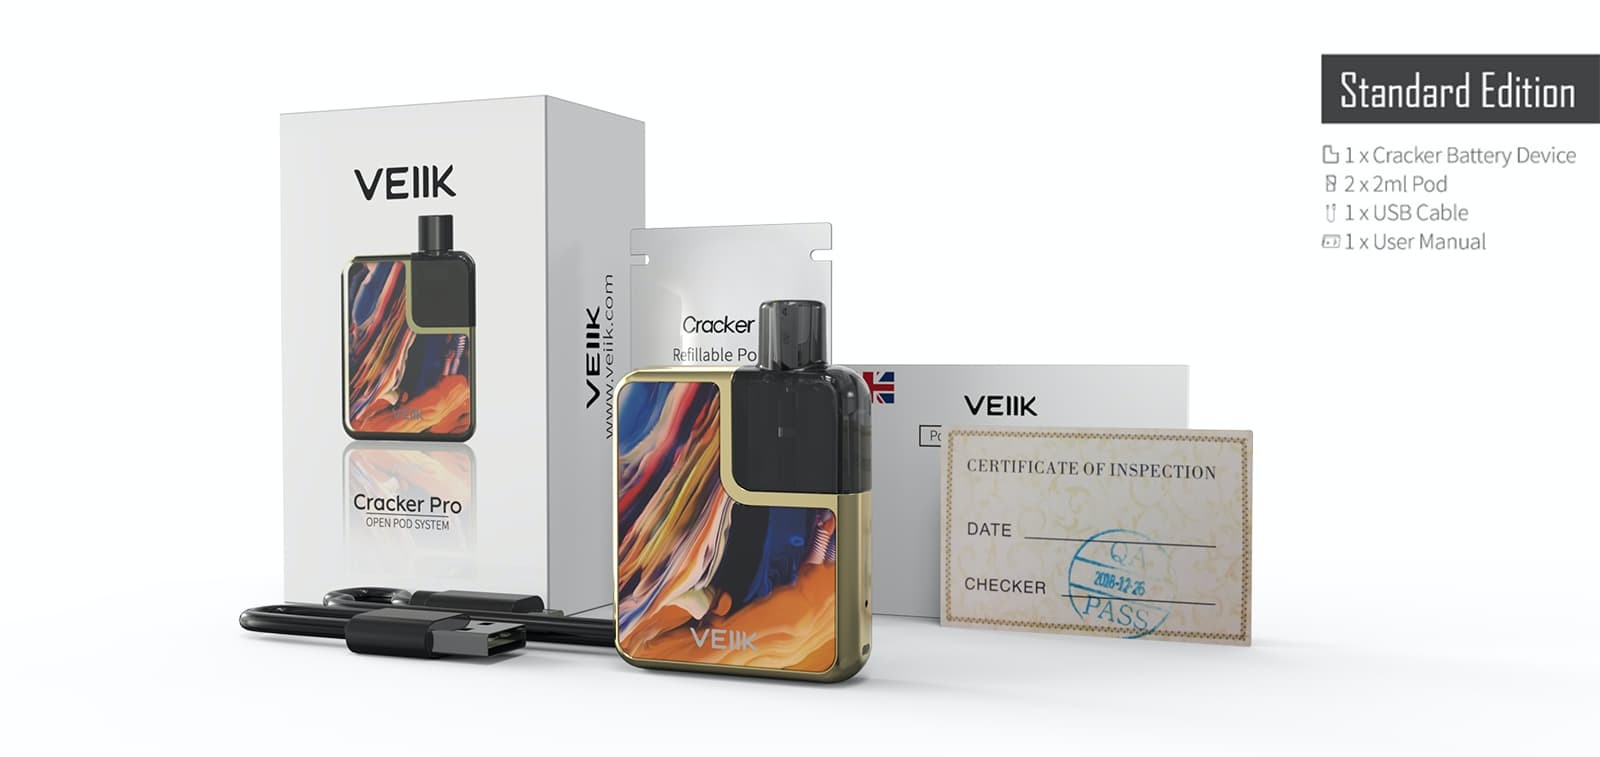 VEIIK exquisite pod devices supplier high-end personal vaporizer